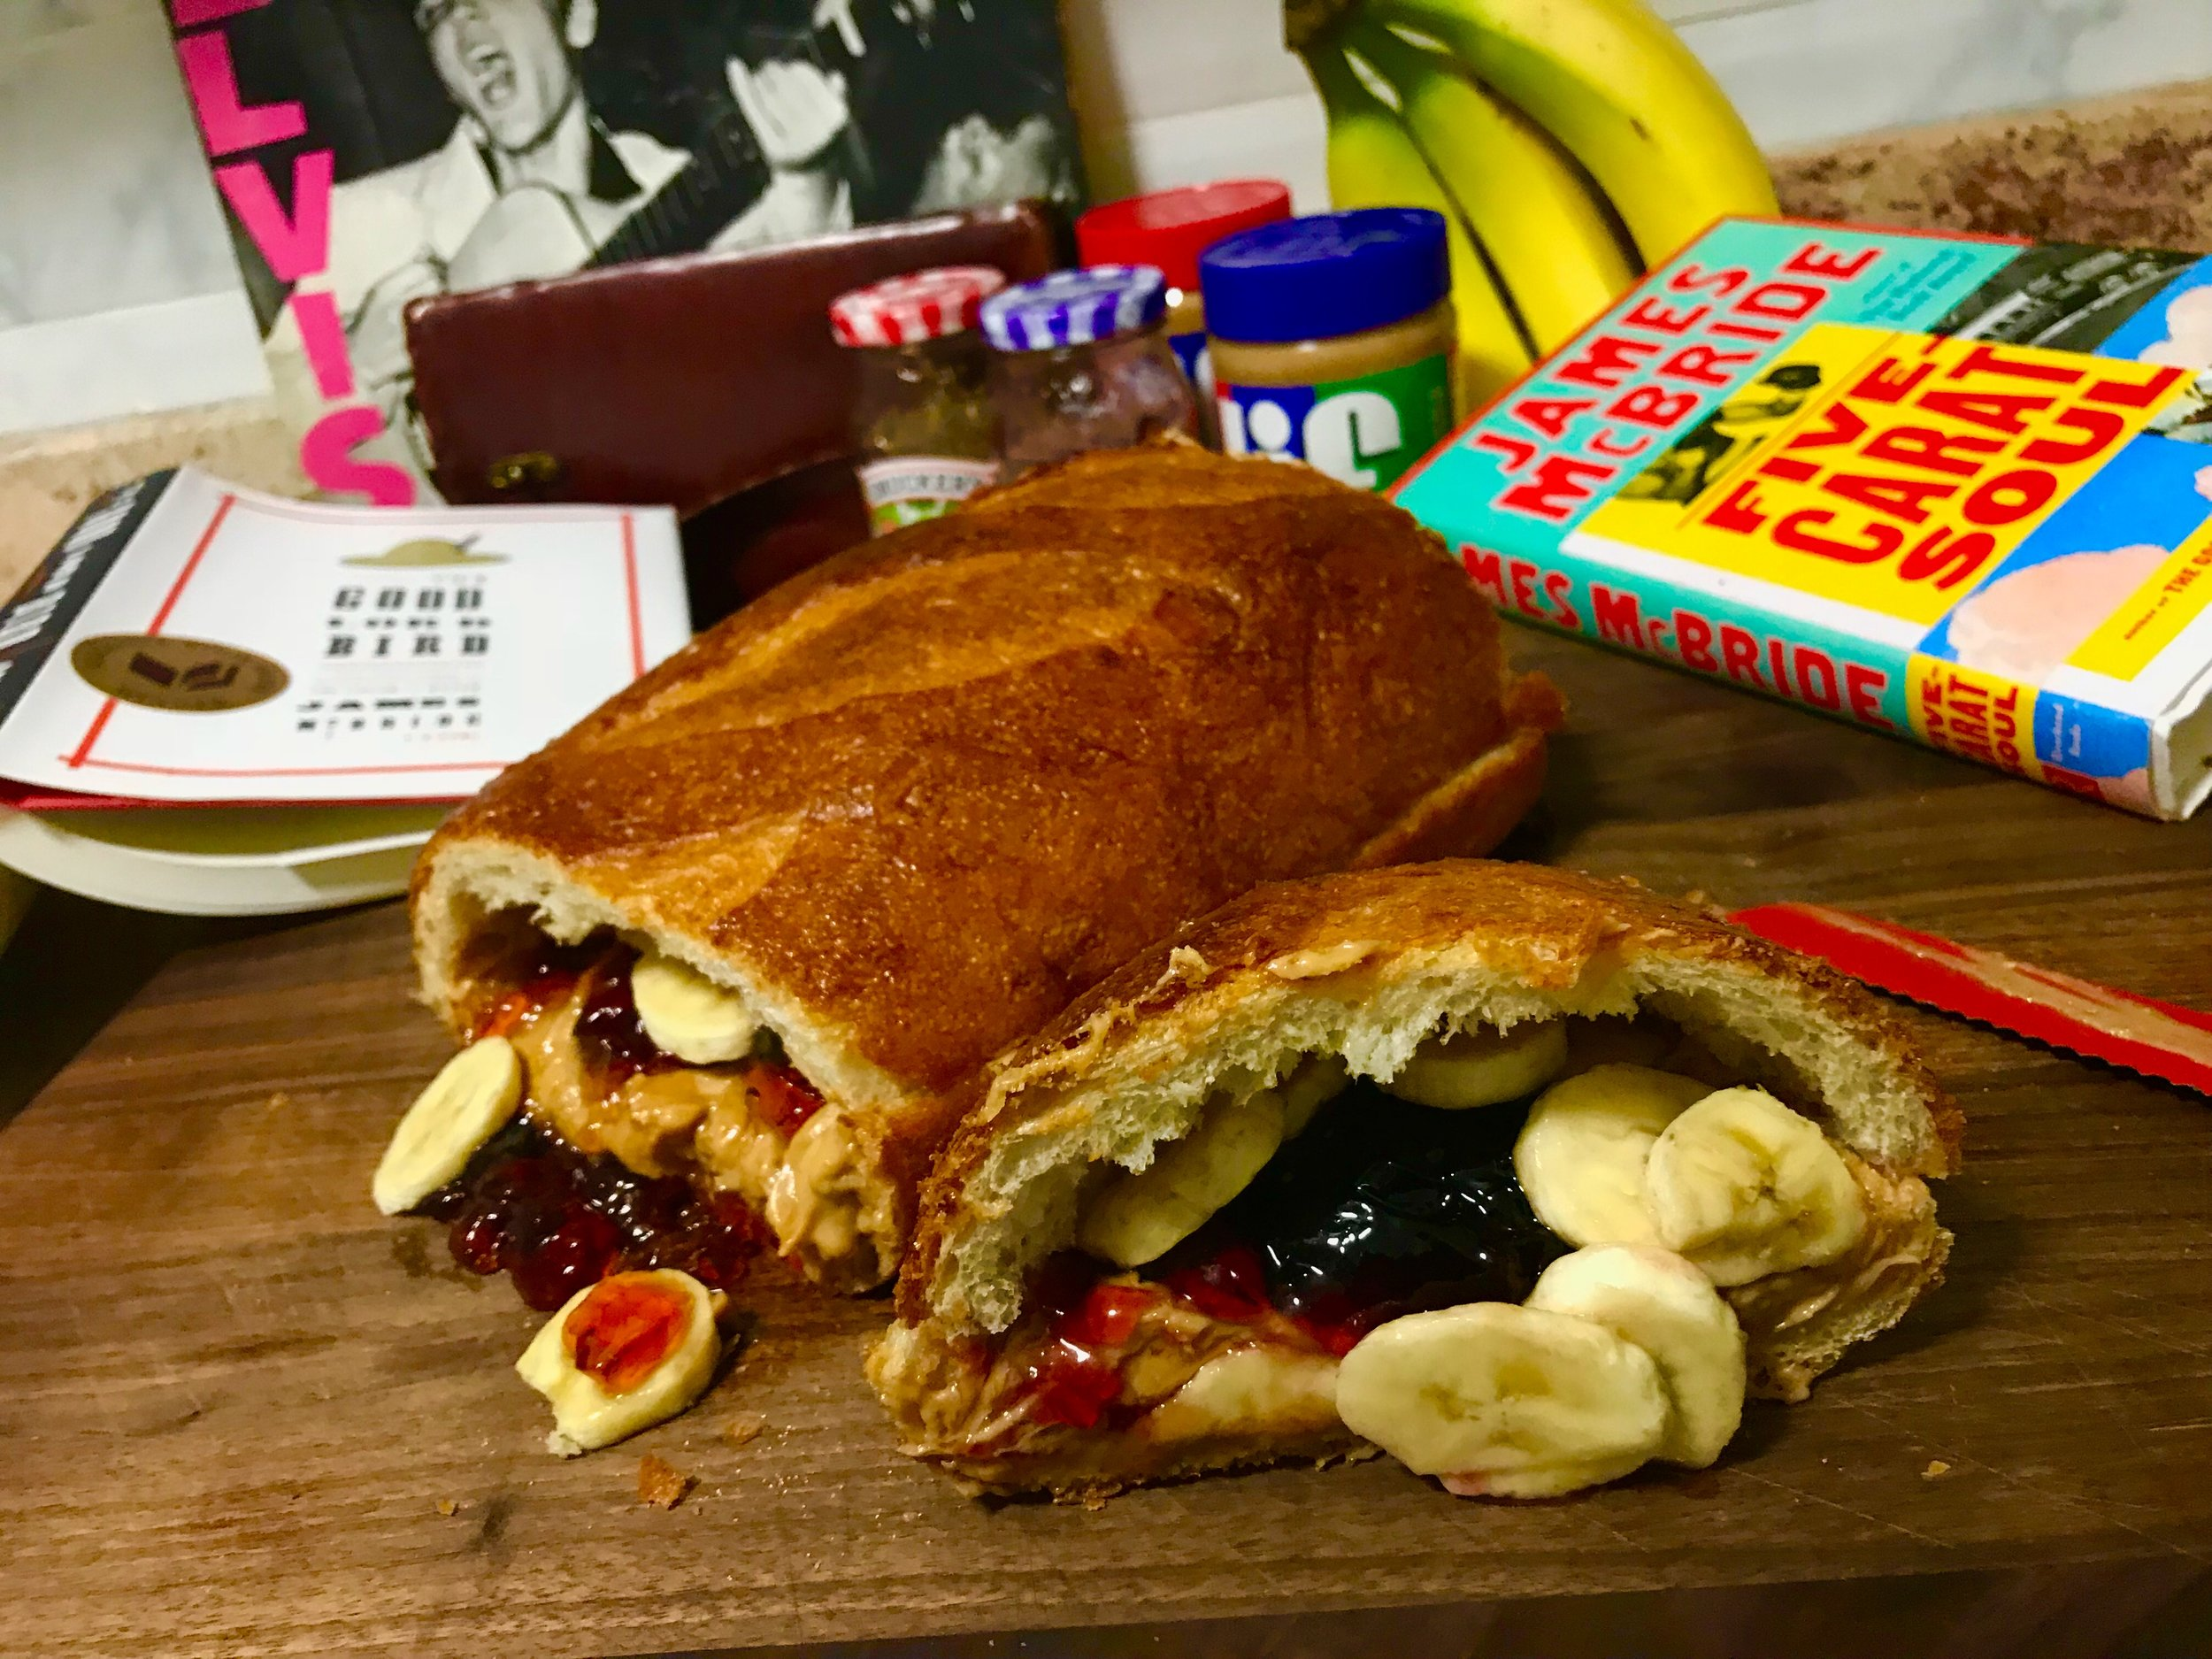 Ingredients: An entire loaf of bread from Brooklyn's own  Baked In Brooklyn , 1/2 a jar of Jif creamy peanut butter, 1/2 of Jif crunchy peanut butter, 1/2 a jar of Smucker's Grape jelly, 1/2 a jar of Smucker's Strawberry jelly, 3 bananas (sliced), and butter. Preparation inspired the (in)famous Fool's Gold sandwich made popular by Elvis Presley.